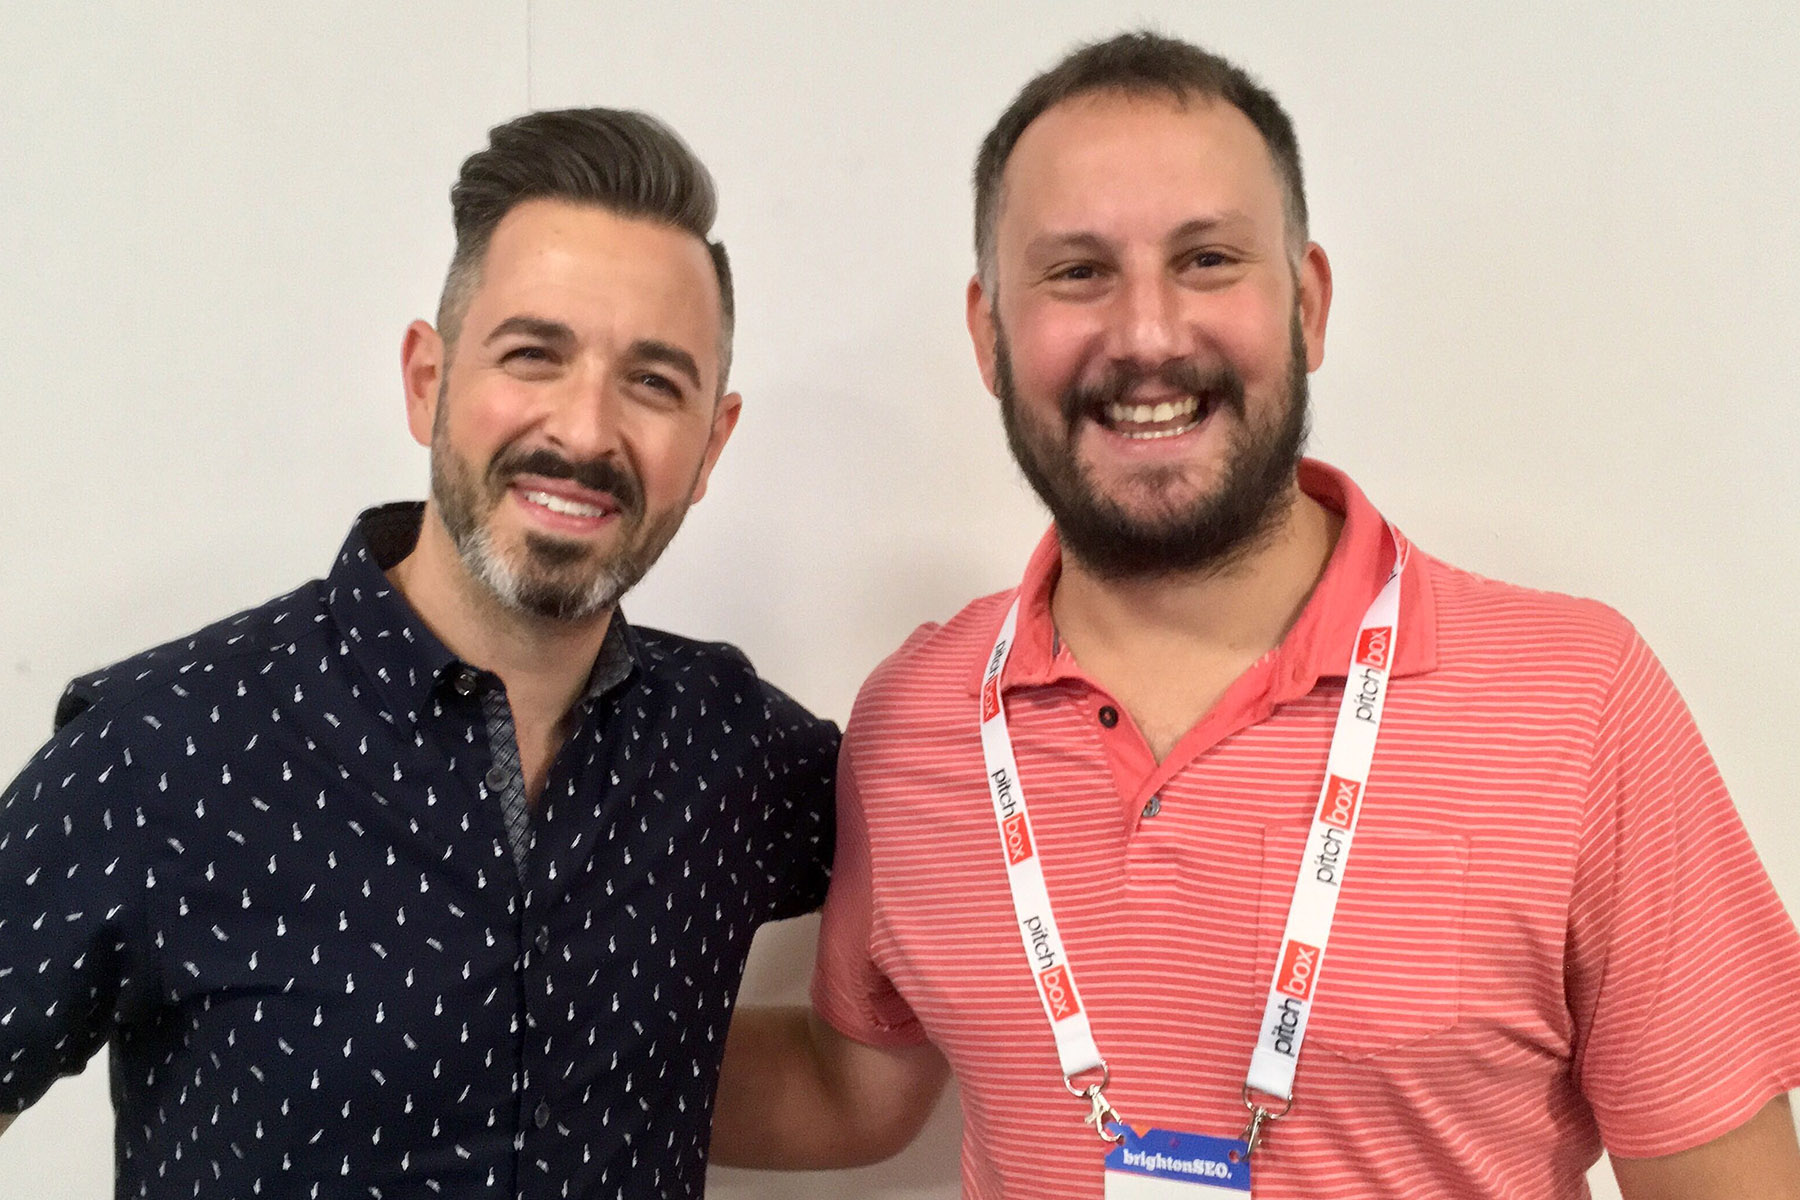 Simon_Key_and_Rand_Fishkin_Optix_Solutions